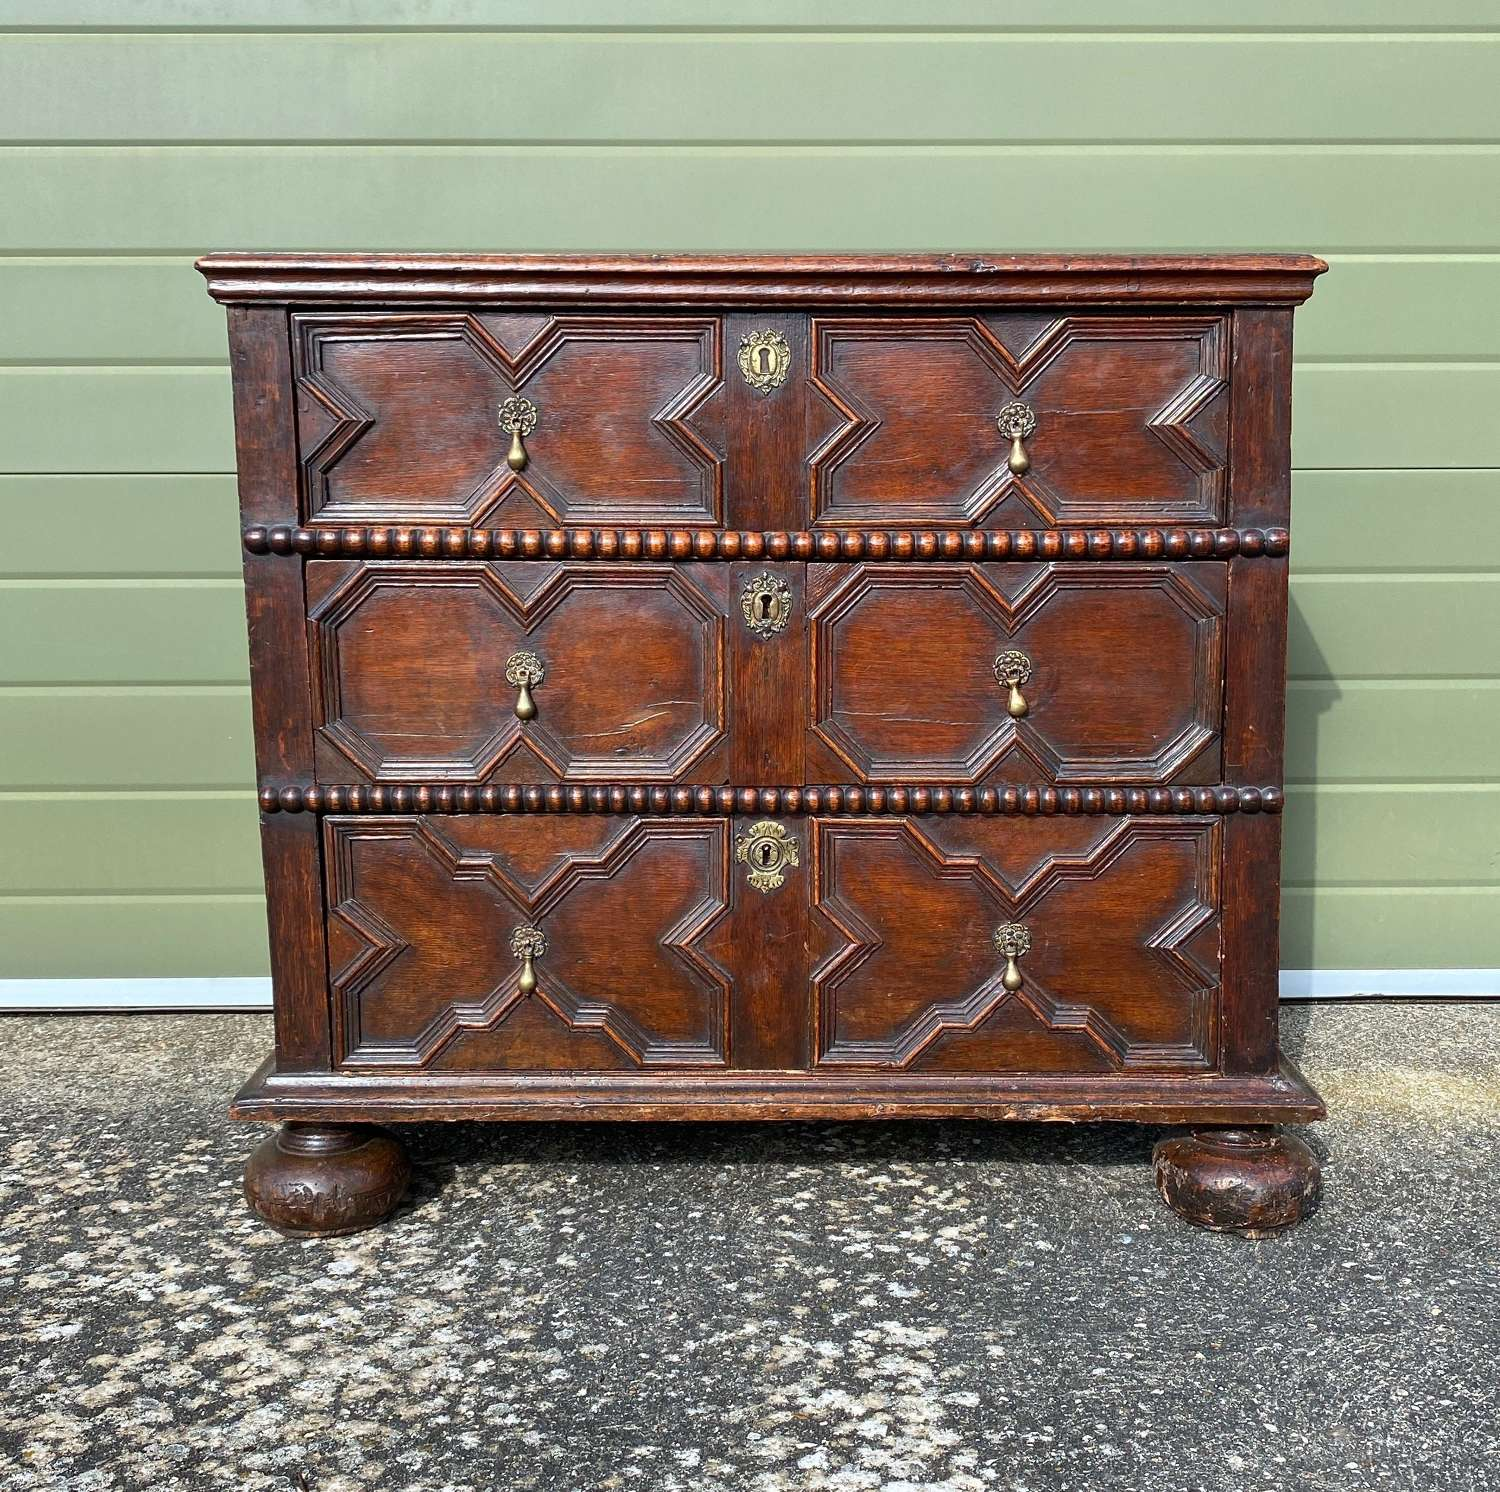 Early 18thC Oak Chest of Three Drawers with Geometric Moulded Fronts.